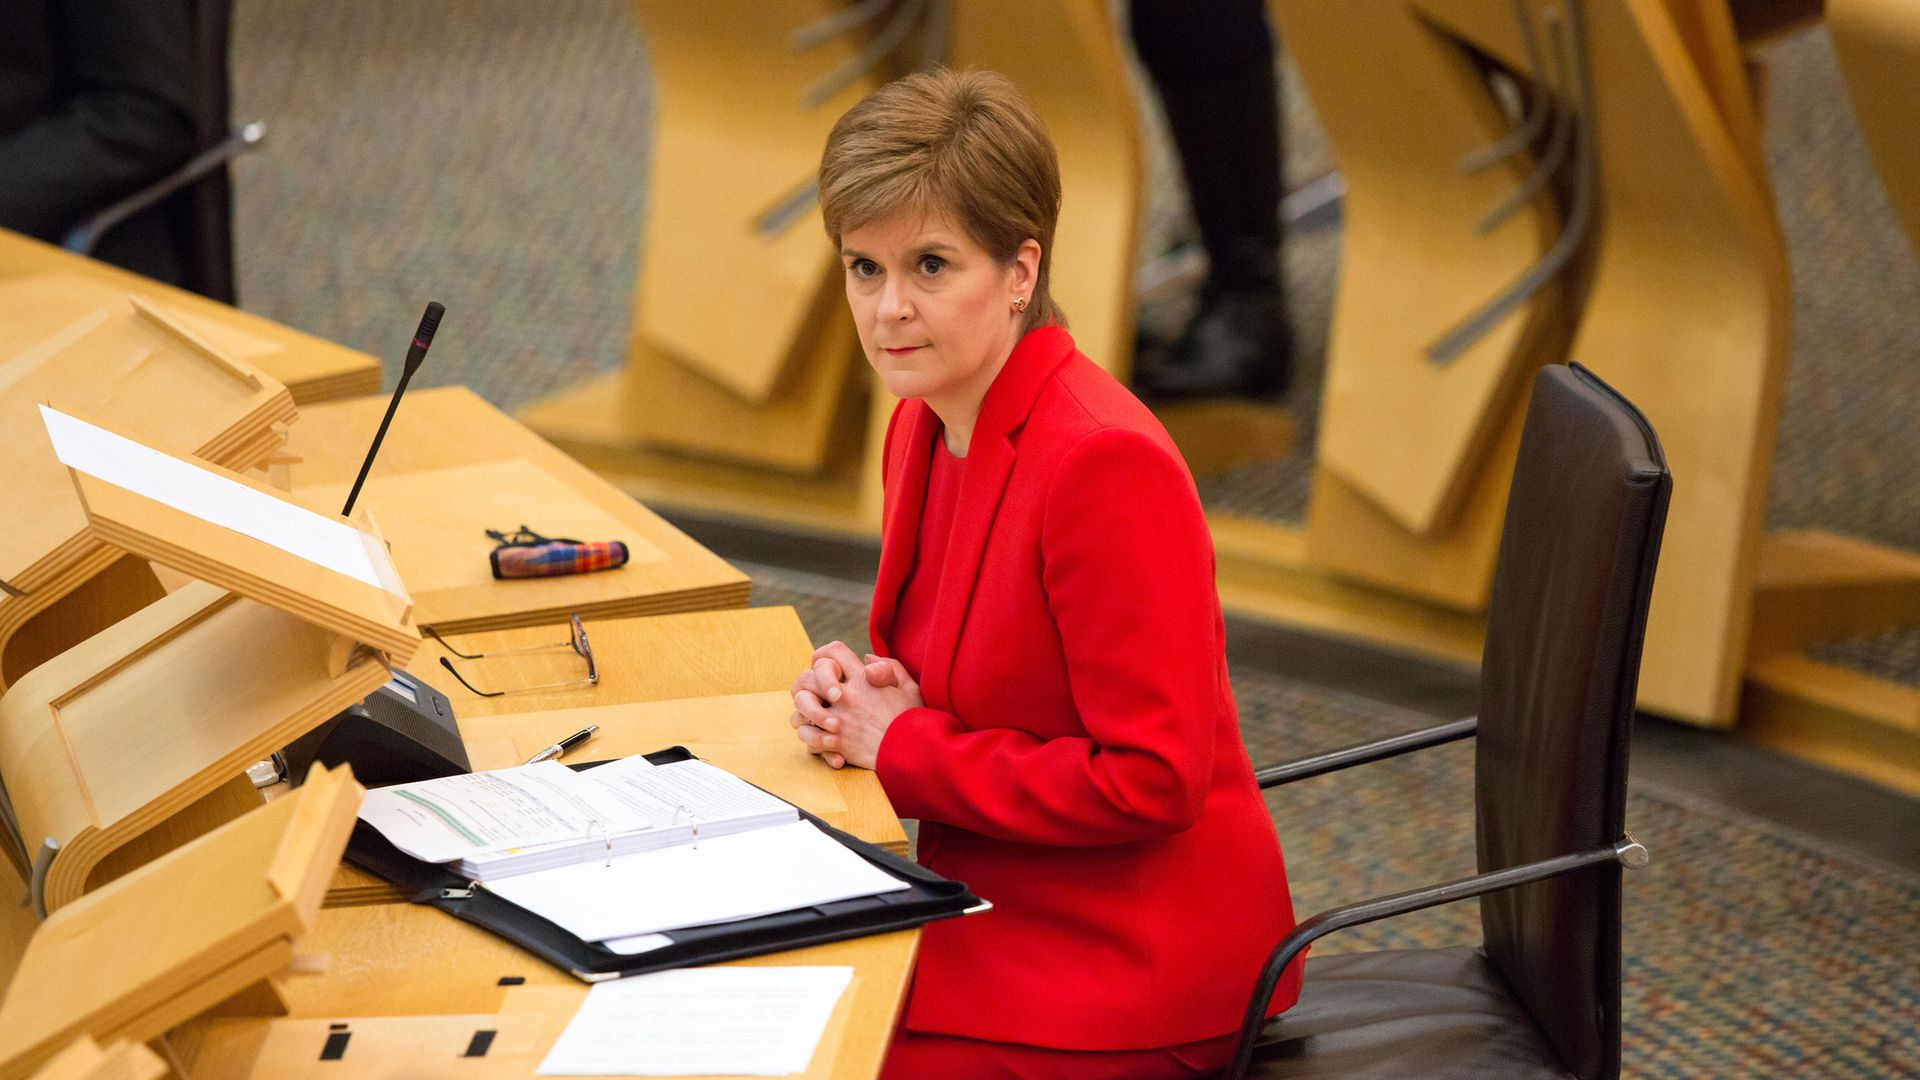 Nicola Sturgeon attending First Minister's Questions at the Scottish Parliament, Edinburgh - Credit: PA